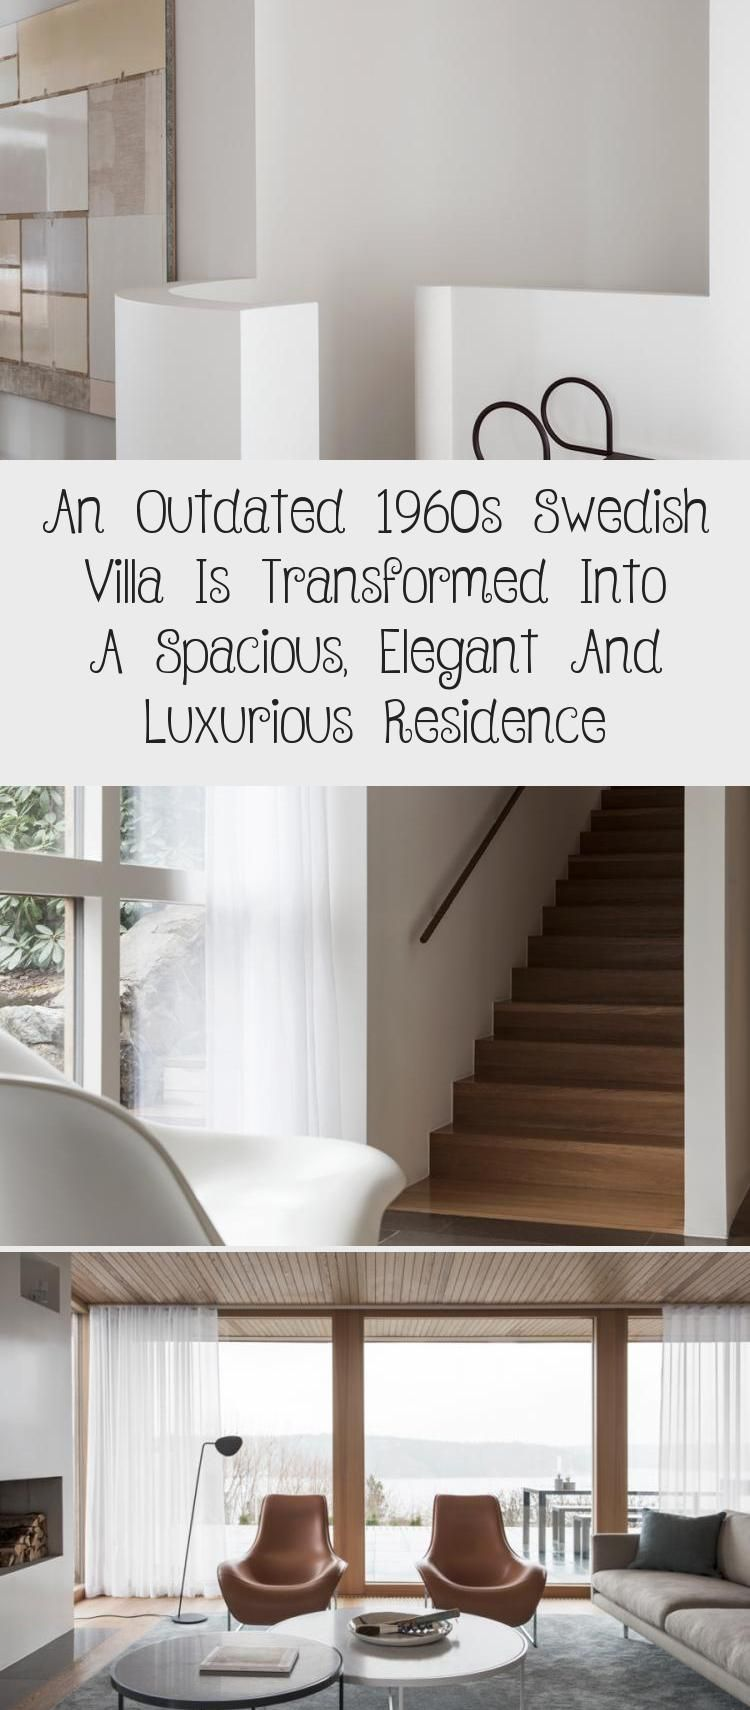 An Outdated 1960s Swedish Villa is Transformed Into a Spacious, Elegant and Luxurious Residence - NordicDesign #ModernInteriorDesignShop #ModernInteriorDesignSmallSpaces #ElegantModernInteriorDesign #ModernInteriorDesignColor #ModernInteriorDesignHome